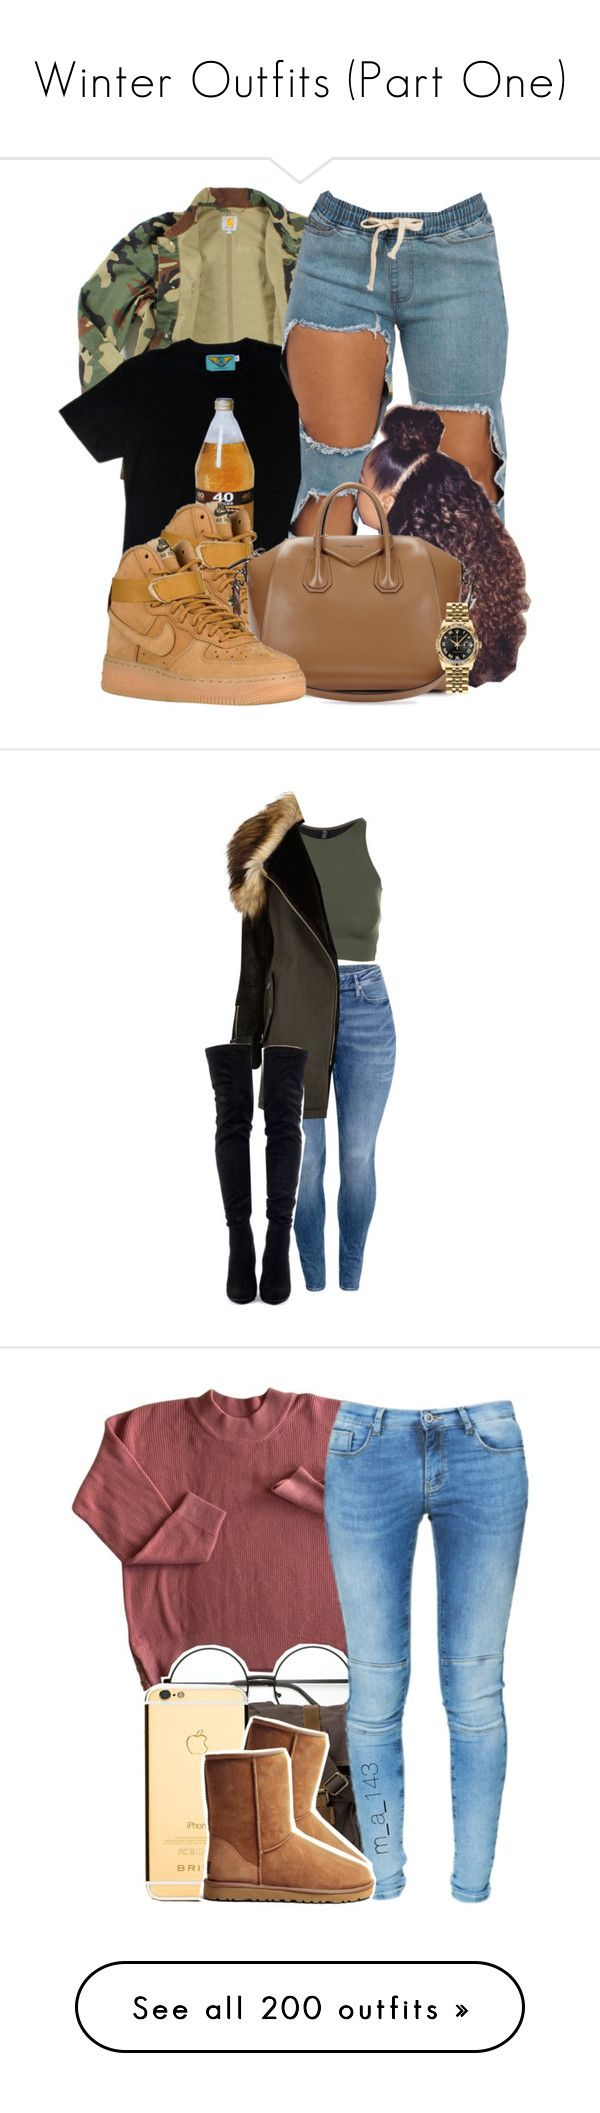 """Winter Outfits (Part One)"" by taylanax0 ❤ liked on Polyvore featuring Carhartt, NIKE, Givenchy, Rolex, women's clothing, women, female, woman, misses and juniors"